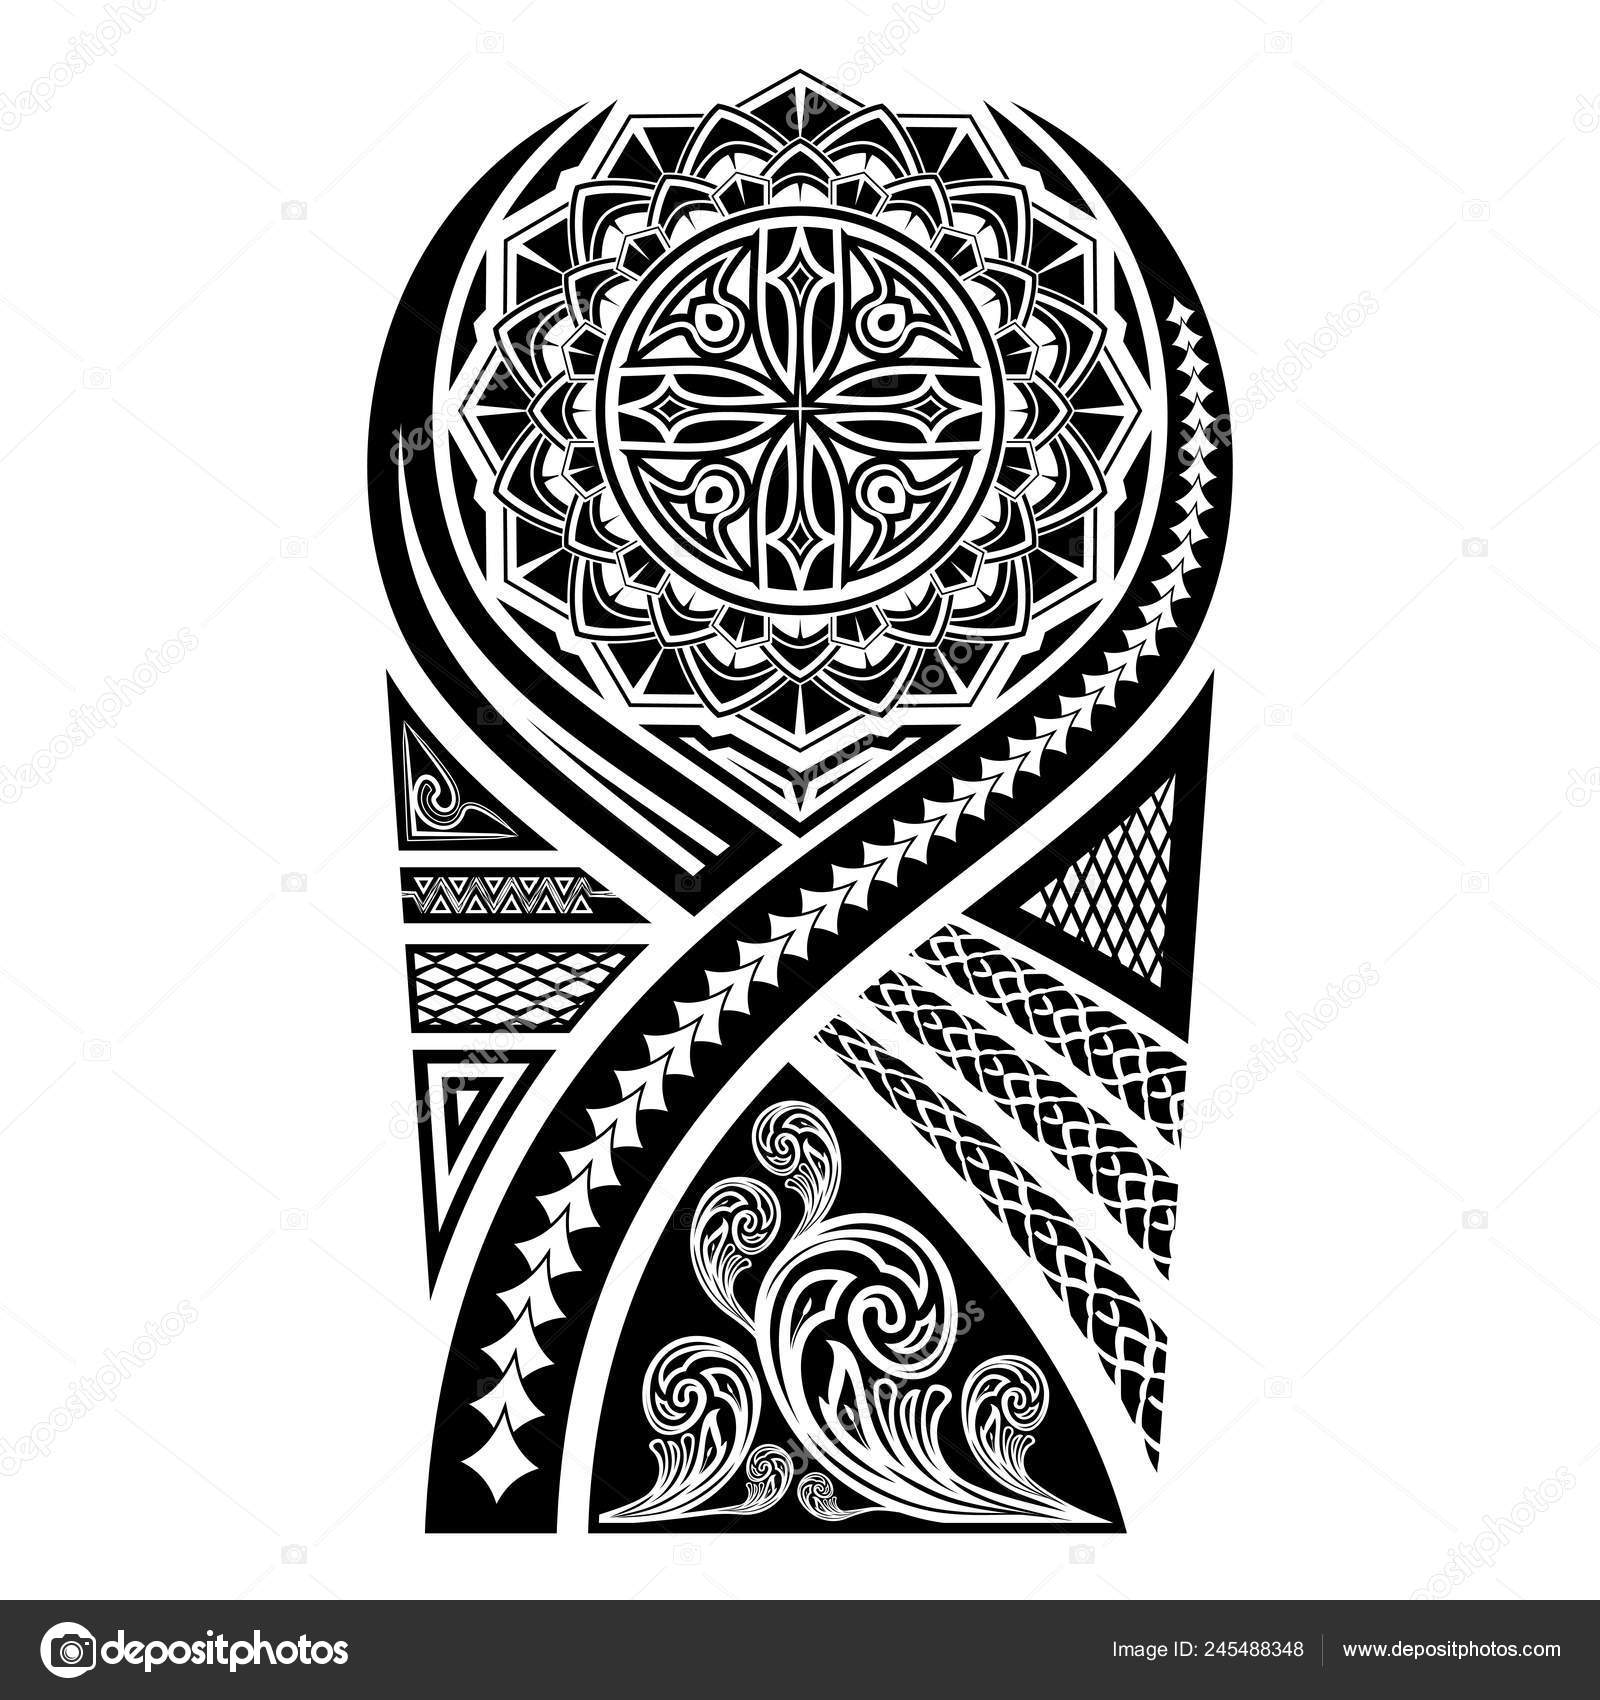 7067fc7ae9e2d Vector Image Sketch Polynesian Tattoo Stylized Sun Flower Ornament Patterns  — Stock Vector